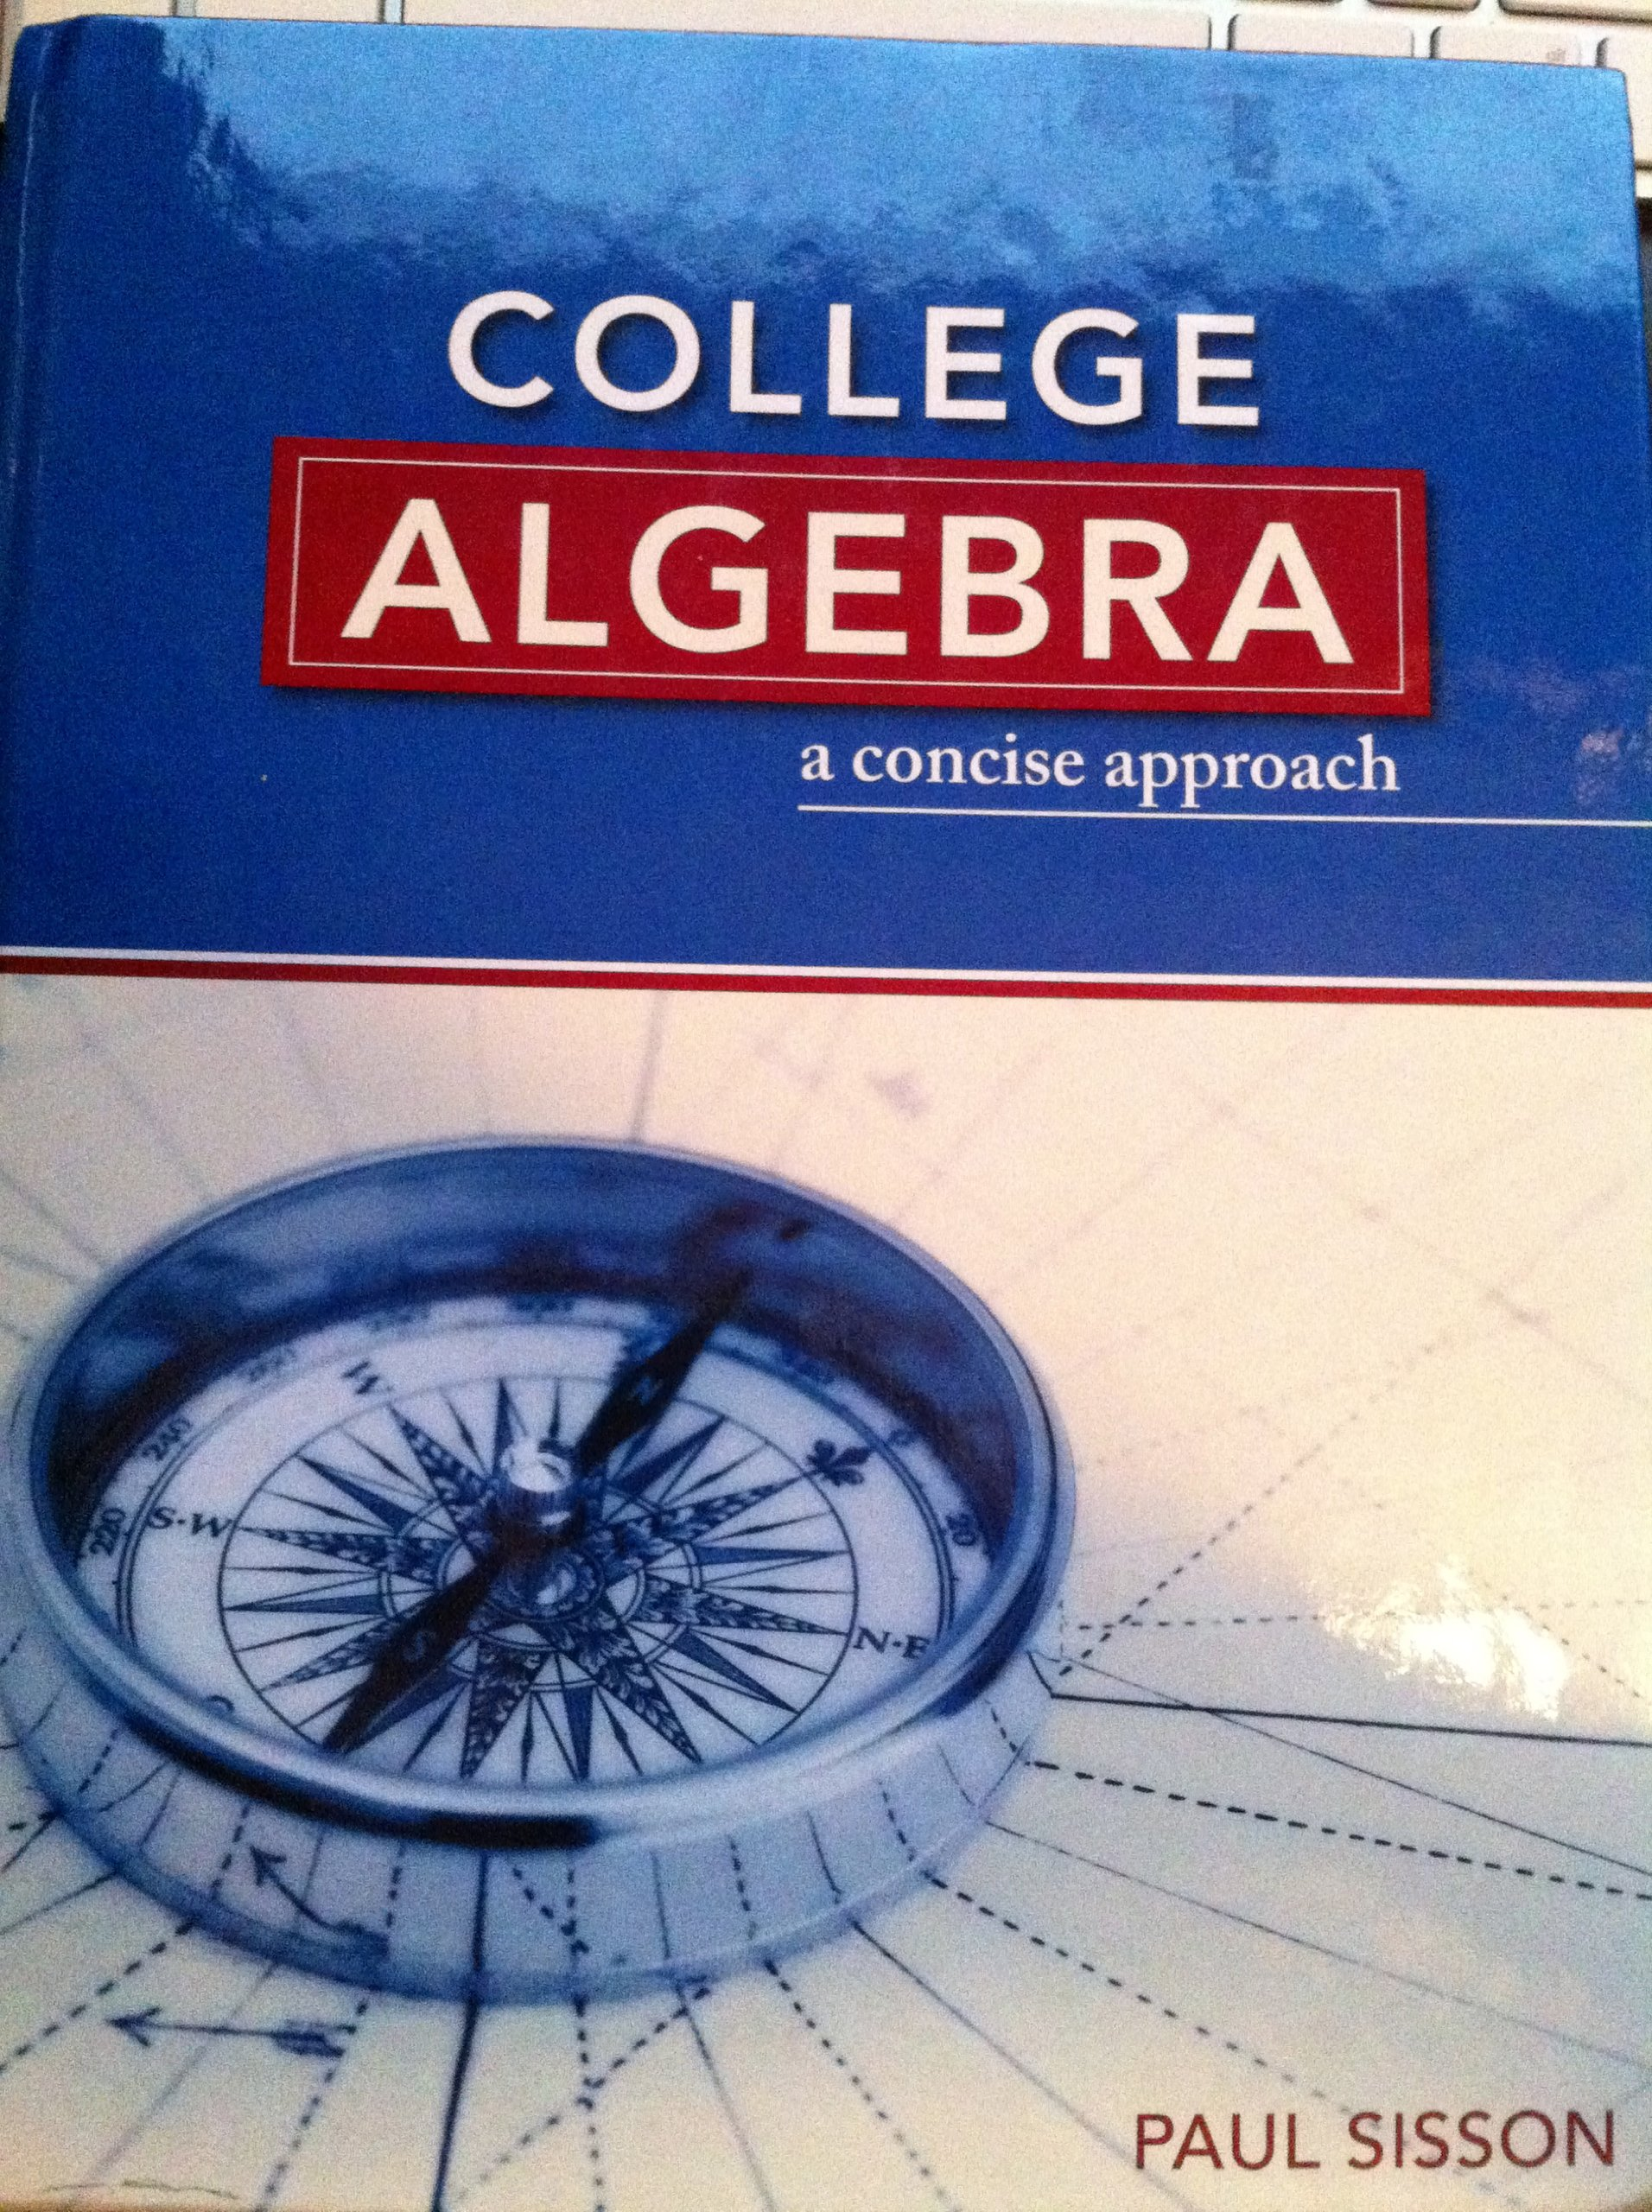 College algebra a concise approach text paul sisson college algebra a concise approach text paul sisson 9781935782025 amazon books fandeluxe Images